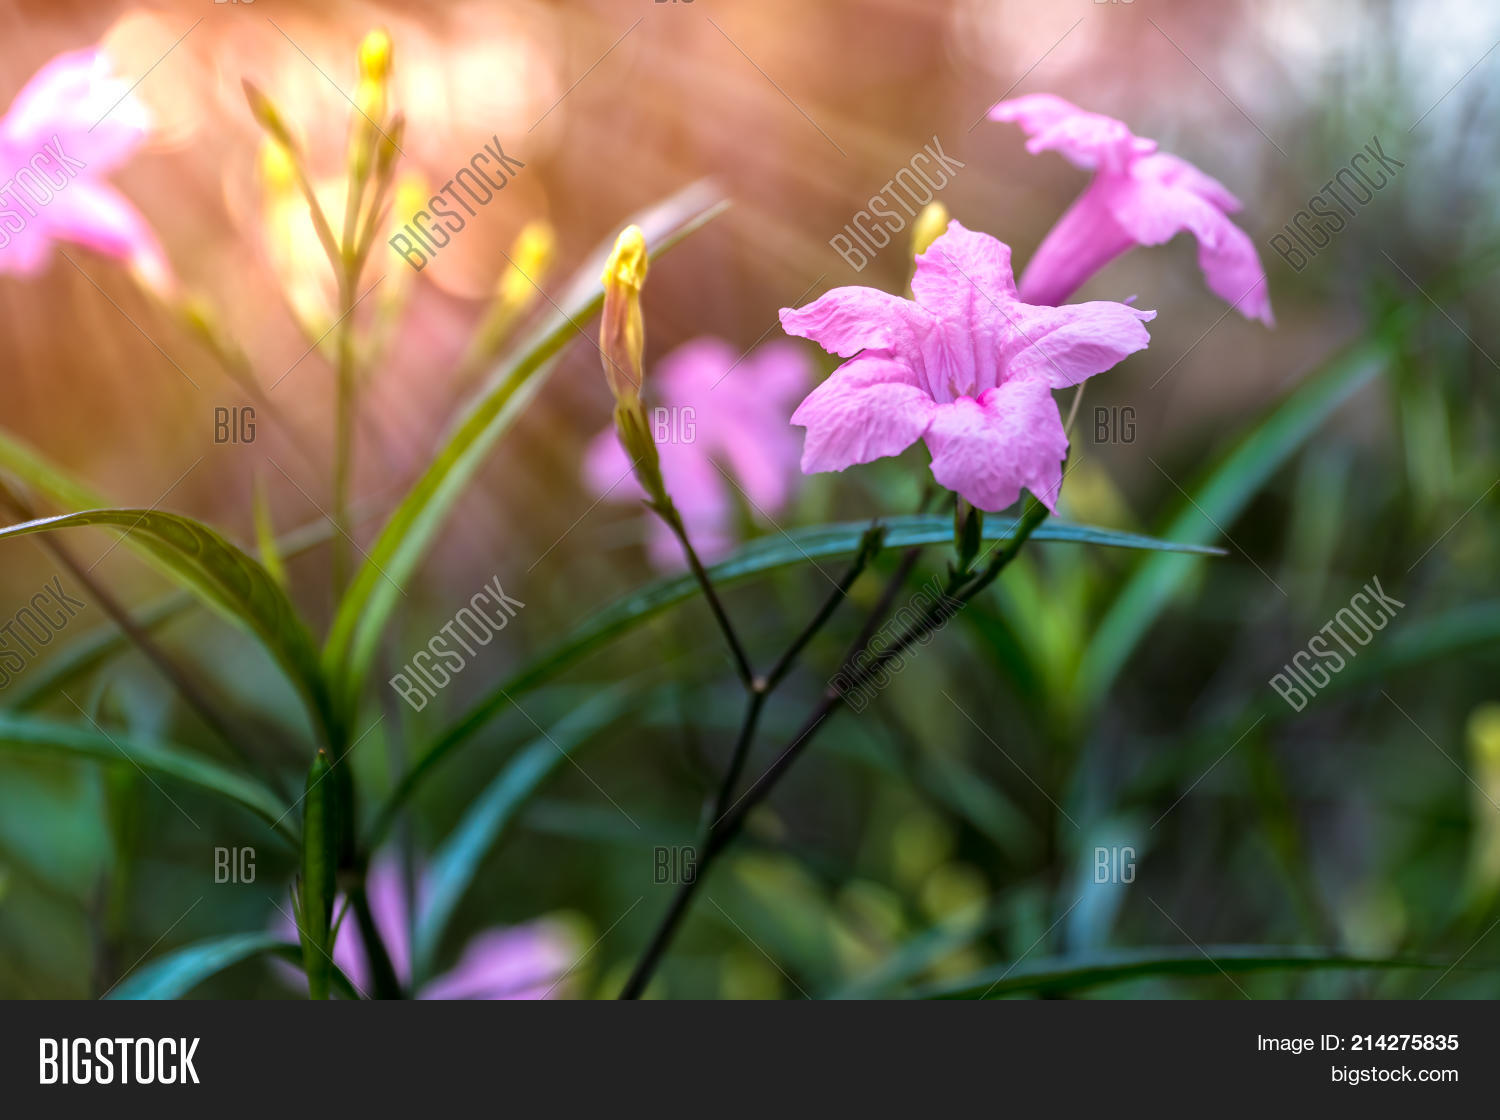 Little pink flowers bush beam image photo bigstock little pink flowers bush with beam sunshine on a dawn mightylinksfo